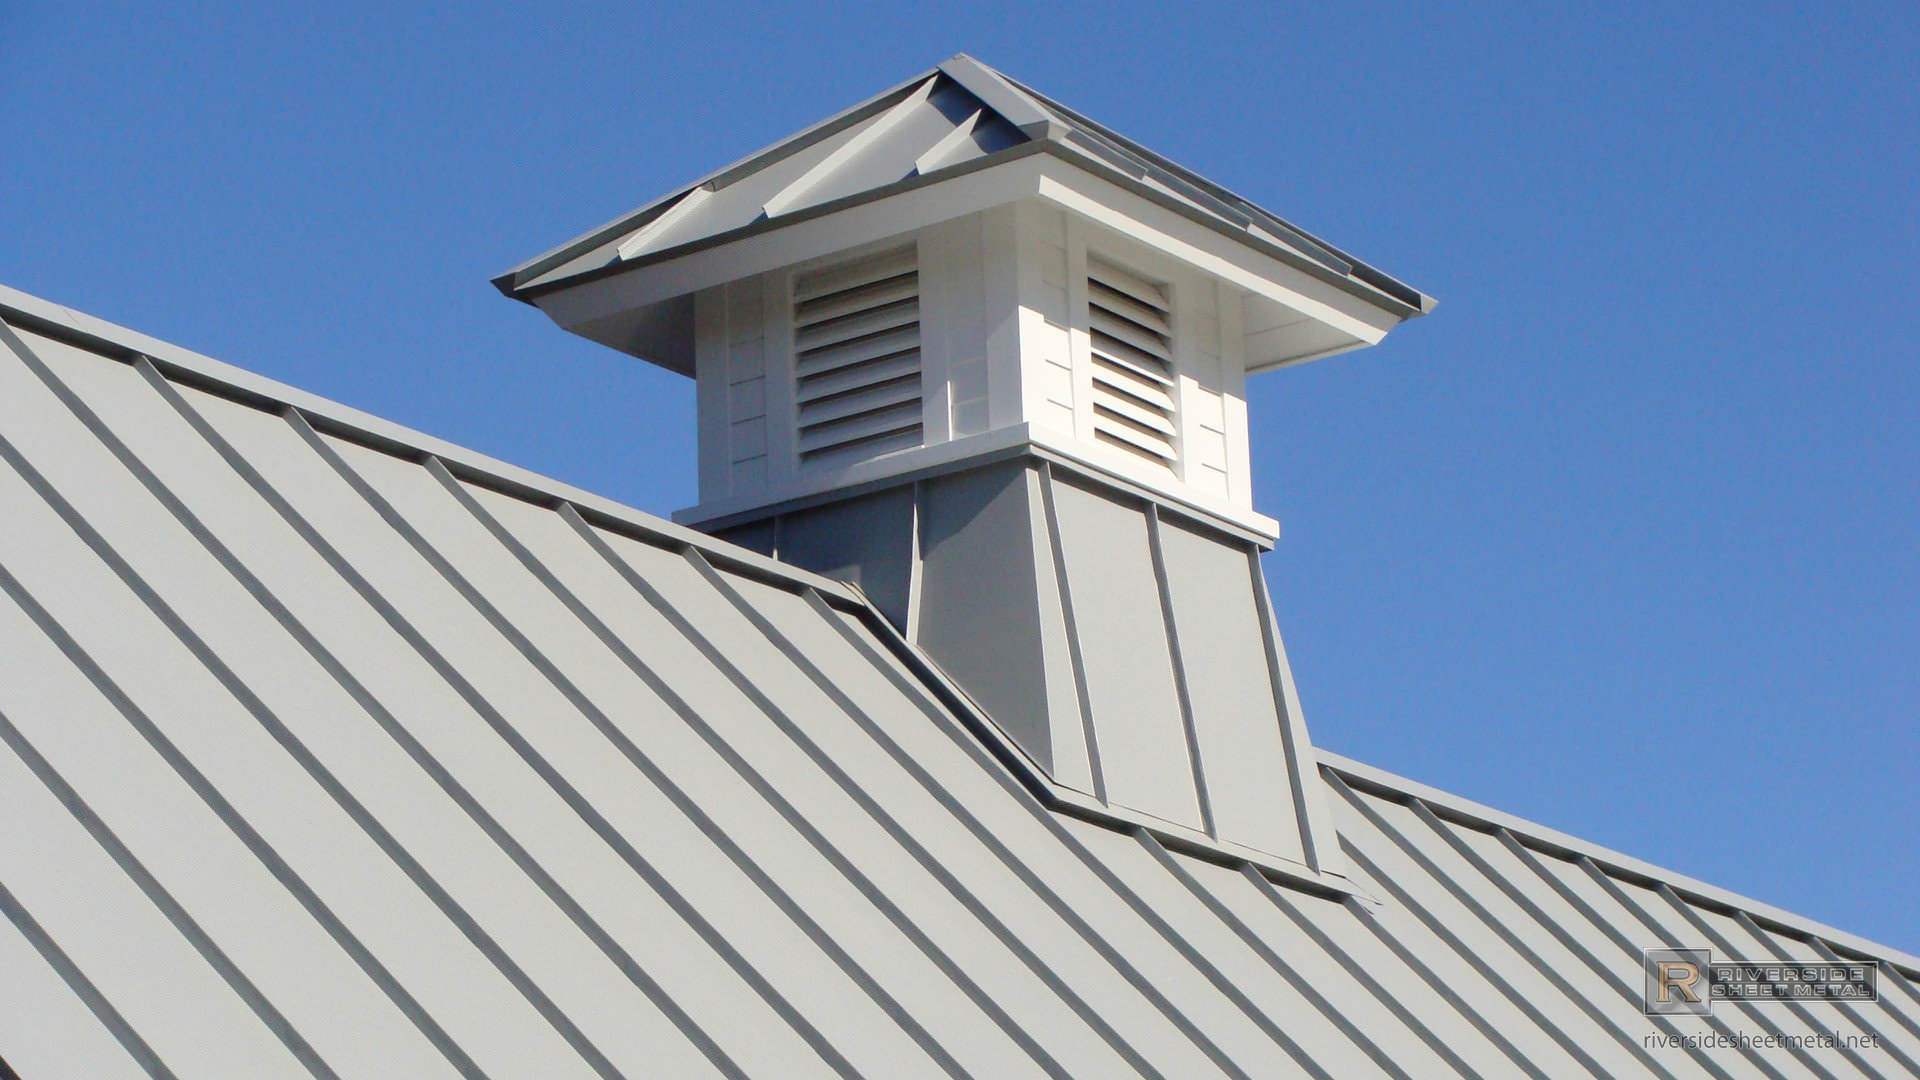 Aluminum Metal Siding : Gray aluminum cupola on metal roof riverside boston ma